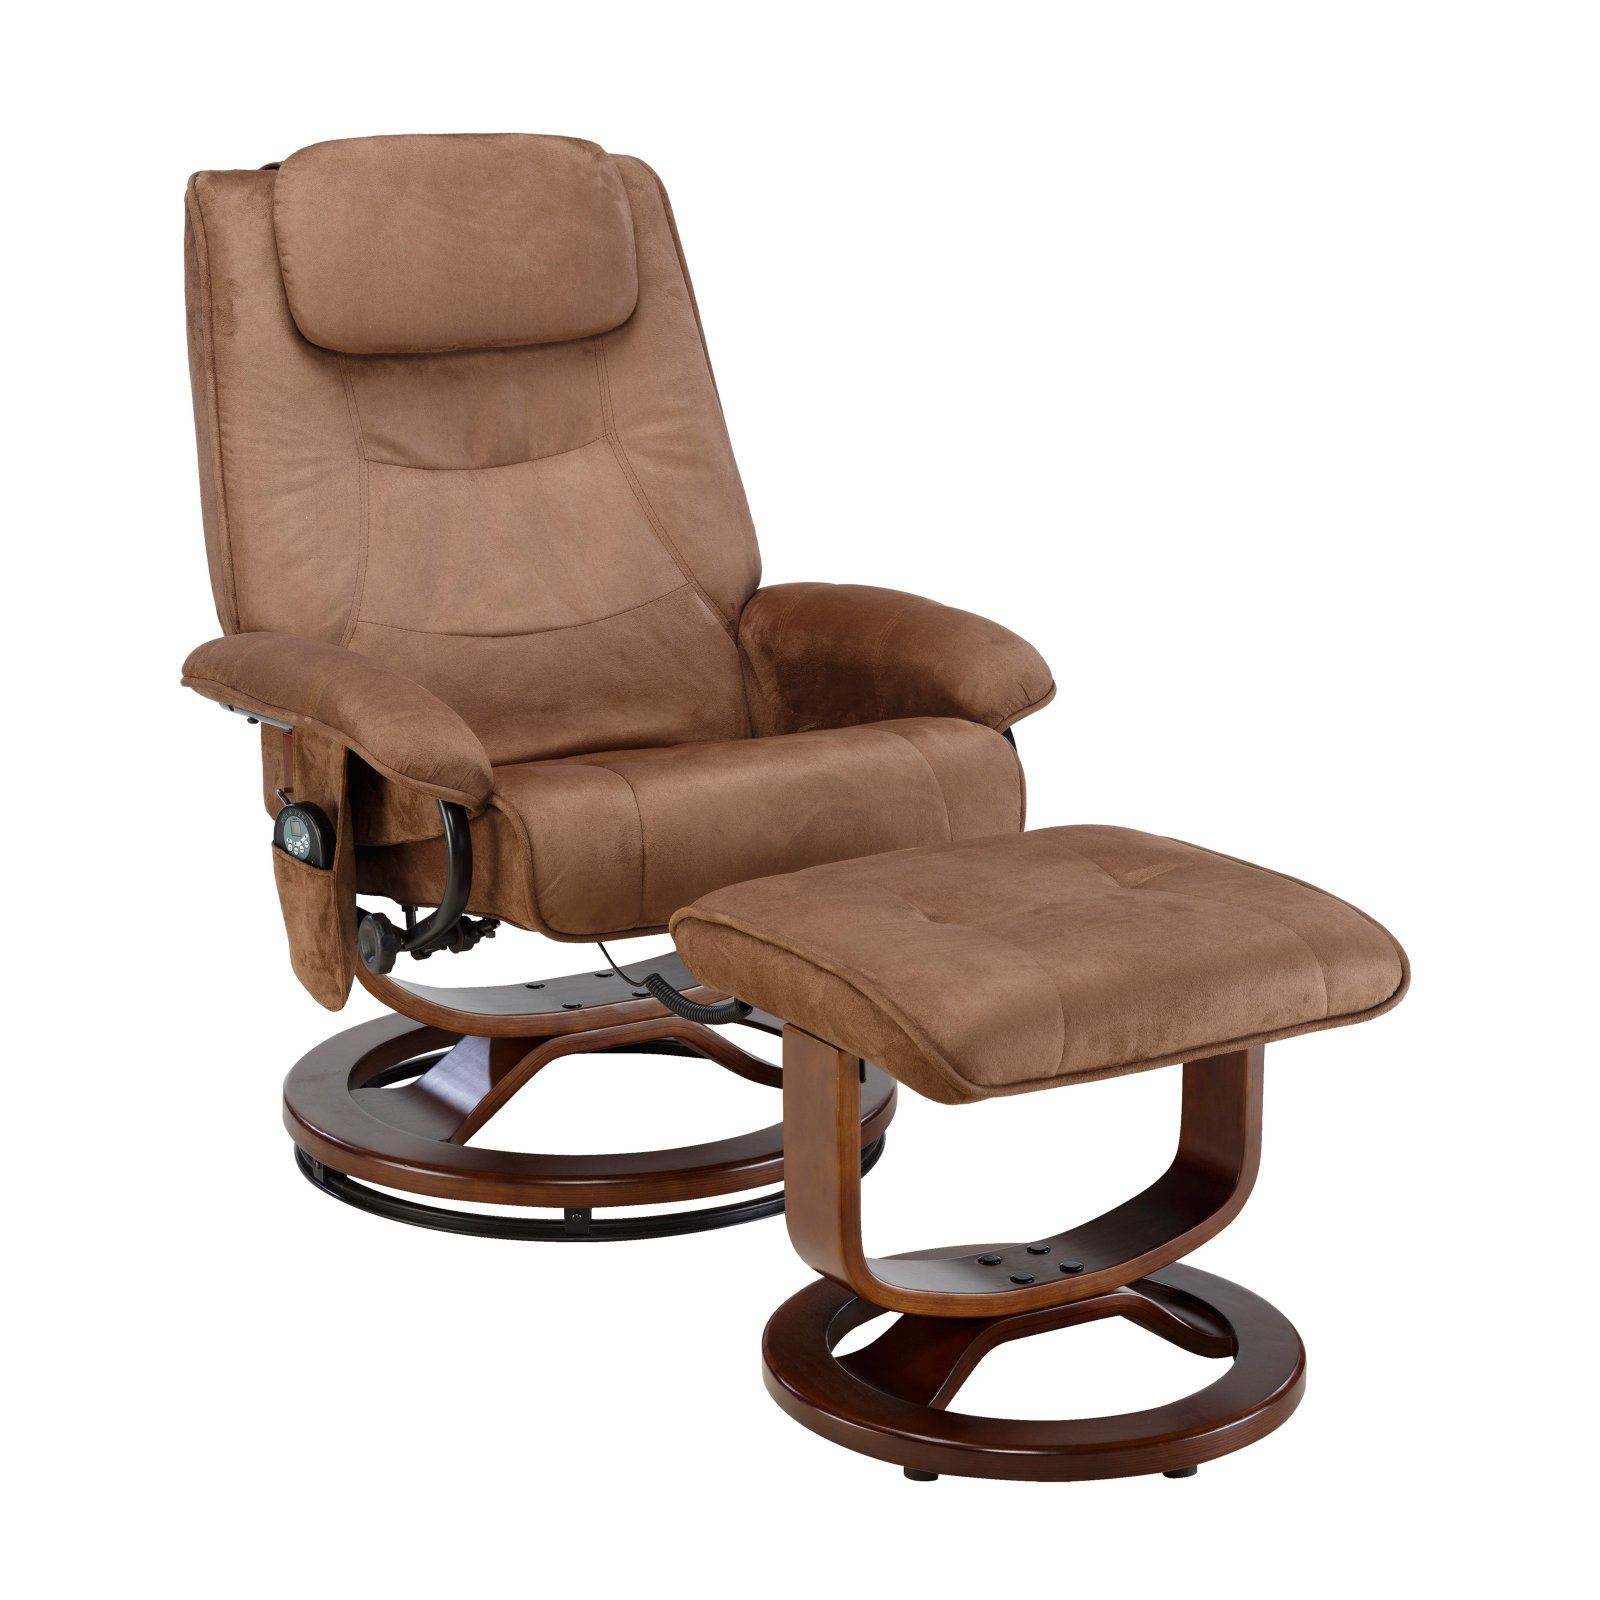 Charmant Relaxzen Reclining Massage Chair And Ottoman, Brown Microseude